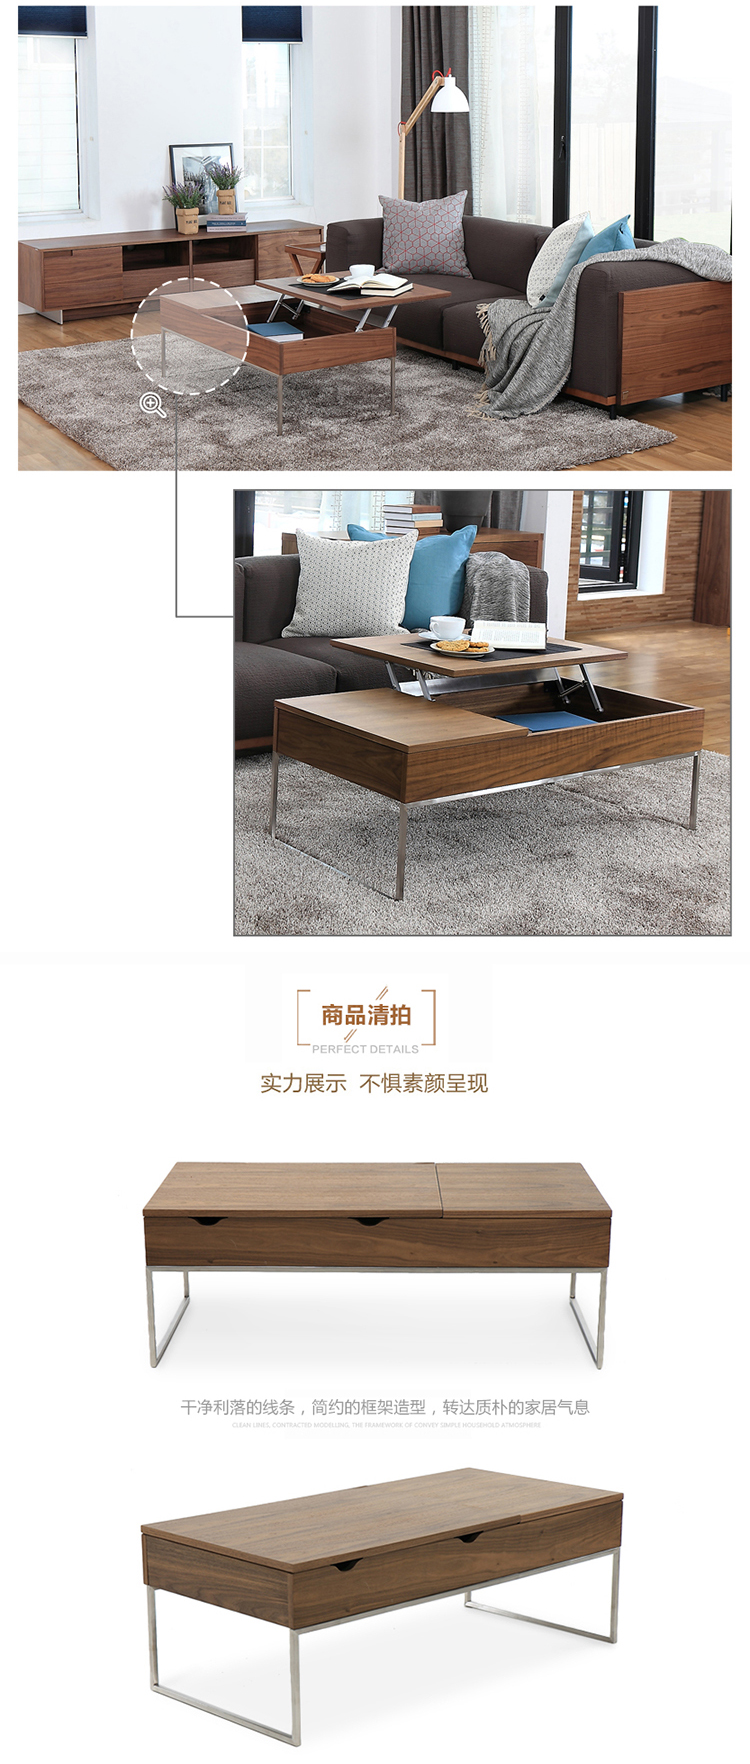 Walnut Color Wood Coffee Table Decor With Storage Metal Solid